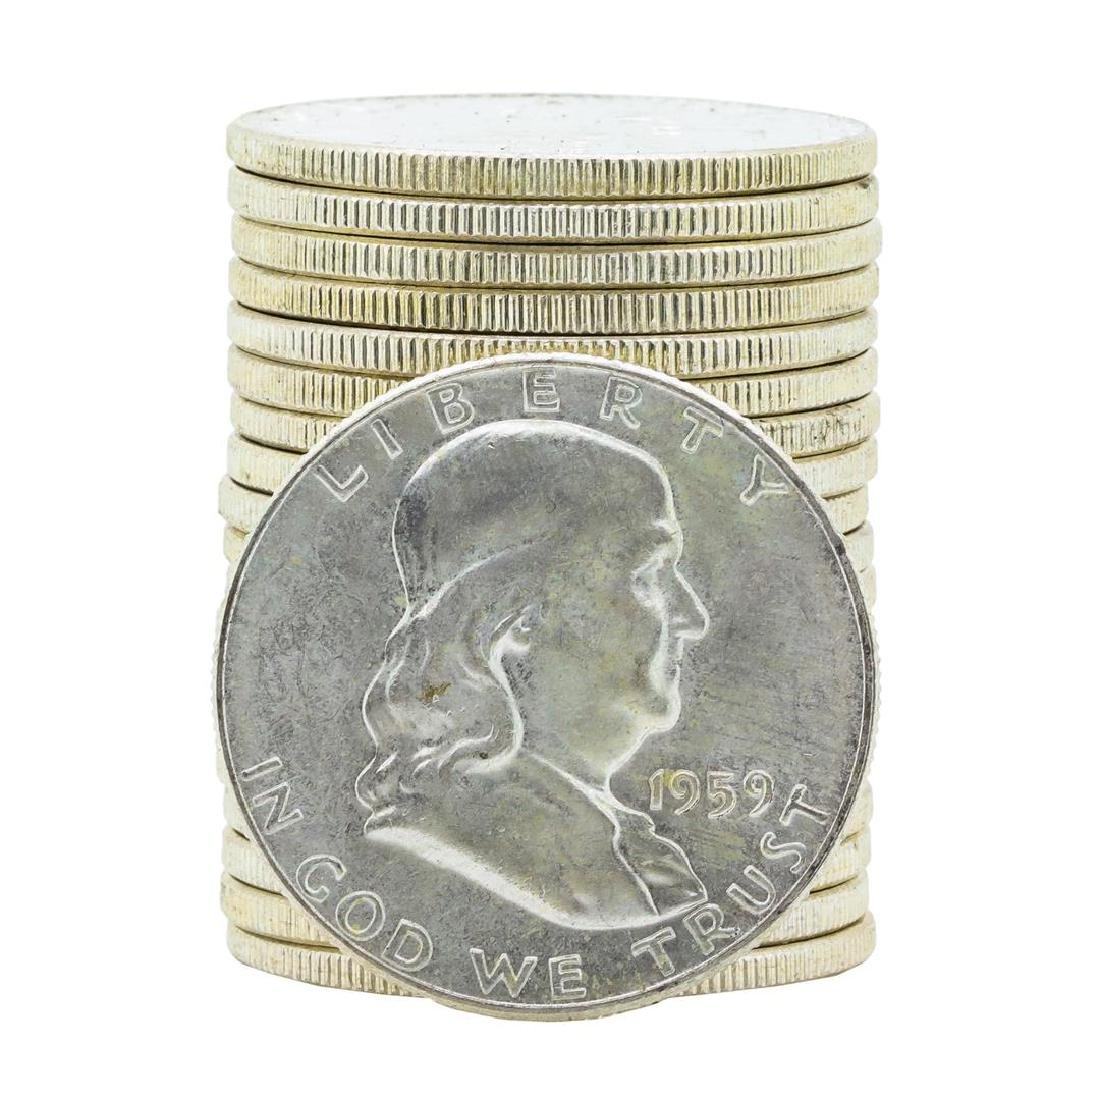 Roll of (20) 1959-P Brilliant Uncirculated Franklin